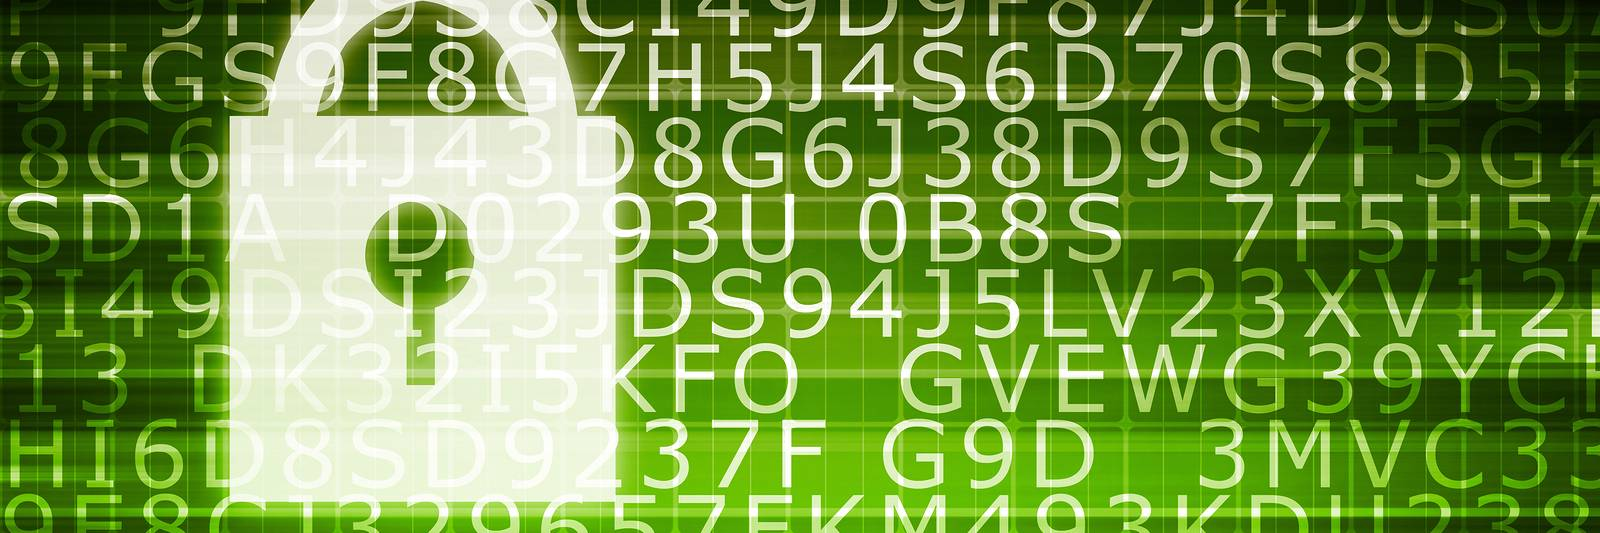 What Is Aes Encryption?